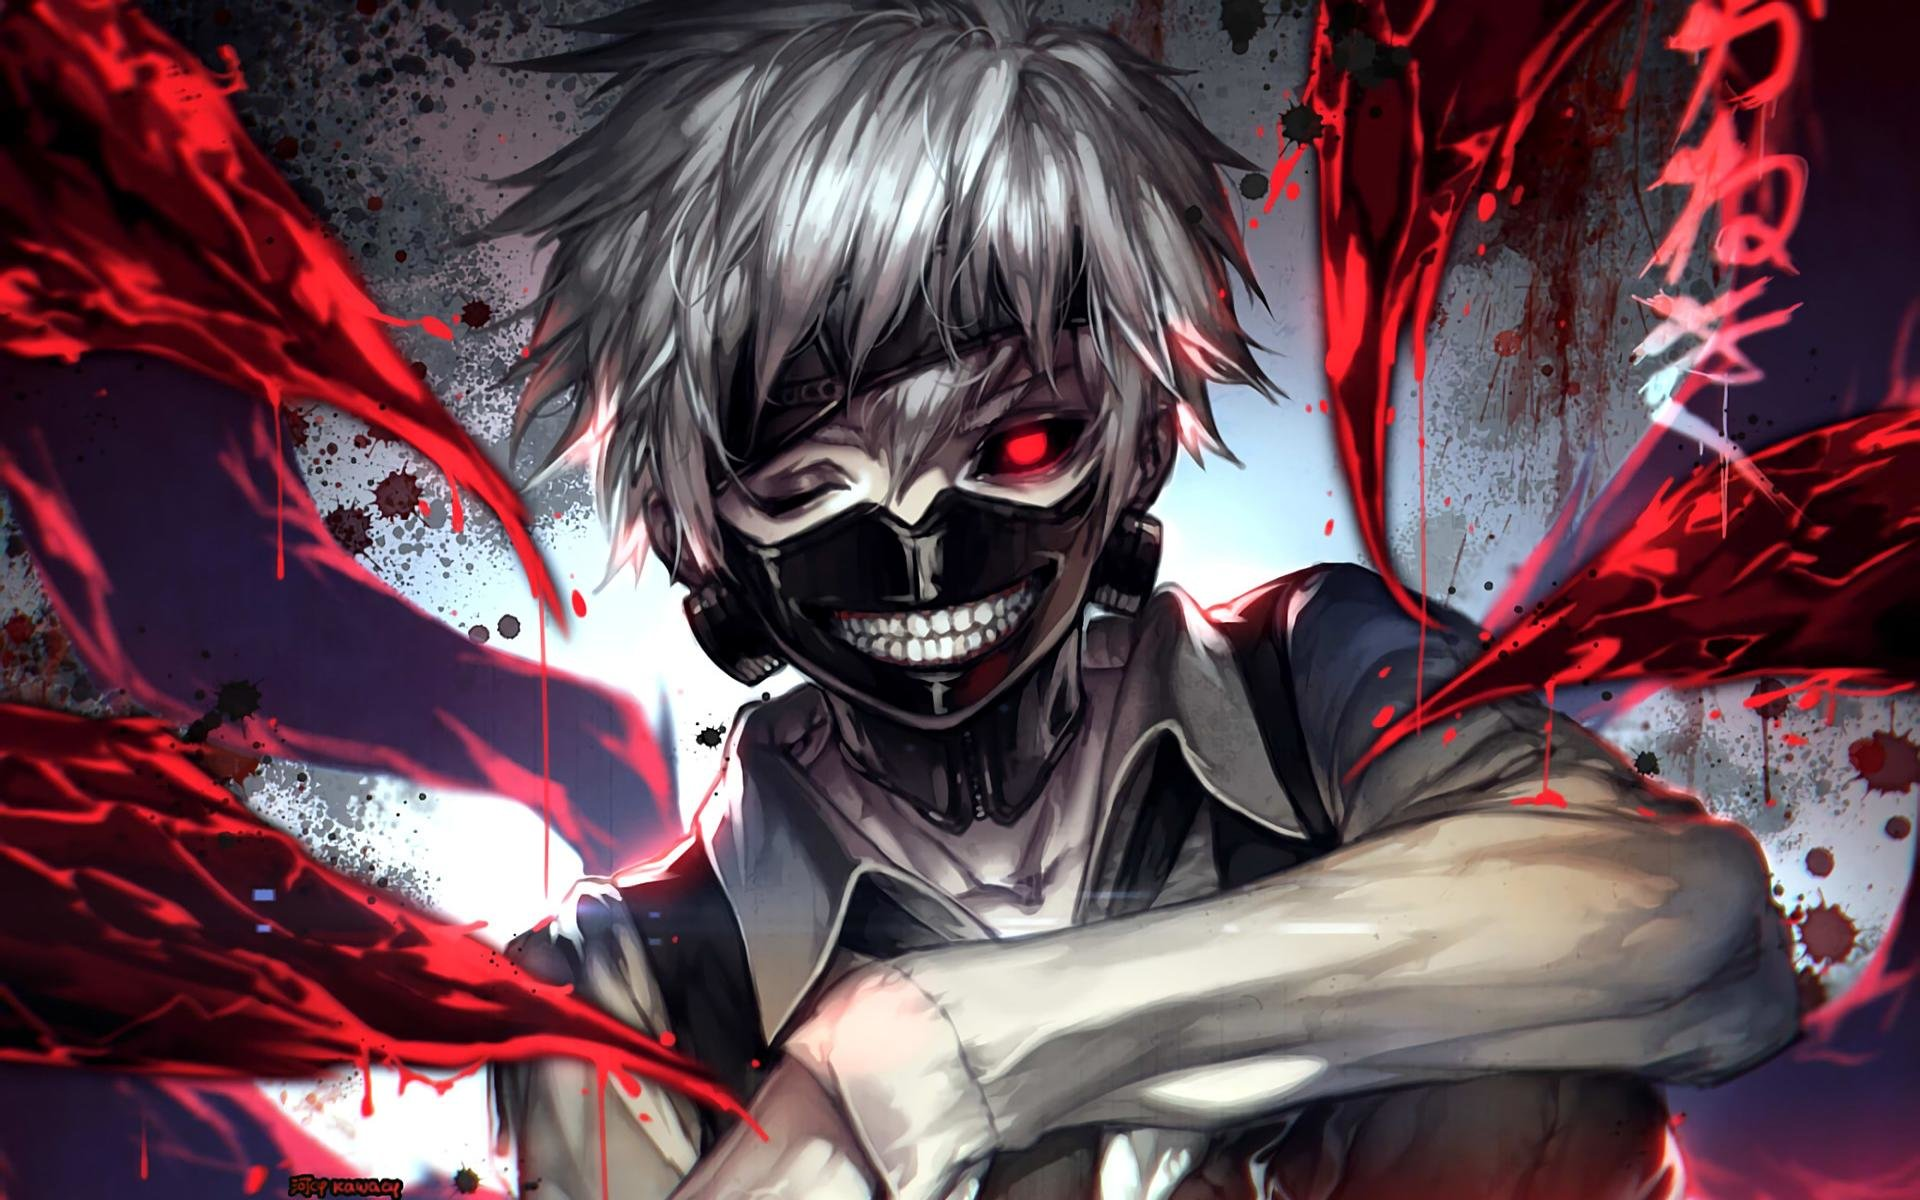 Download hd 1920x1200 Ken Kaneki PC background ID:150015 for free